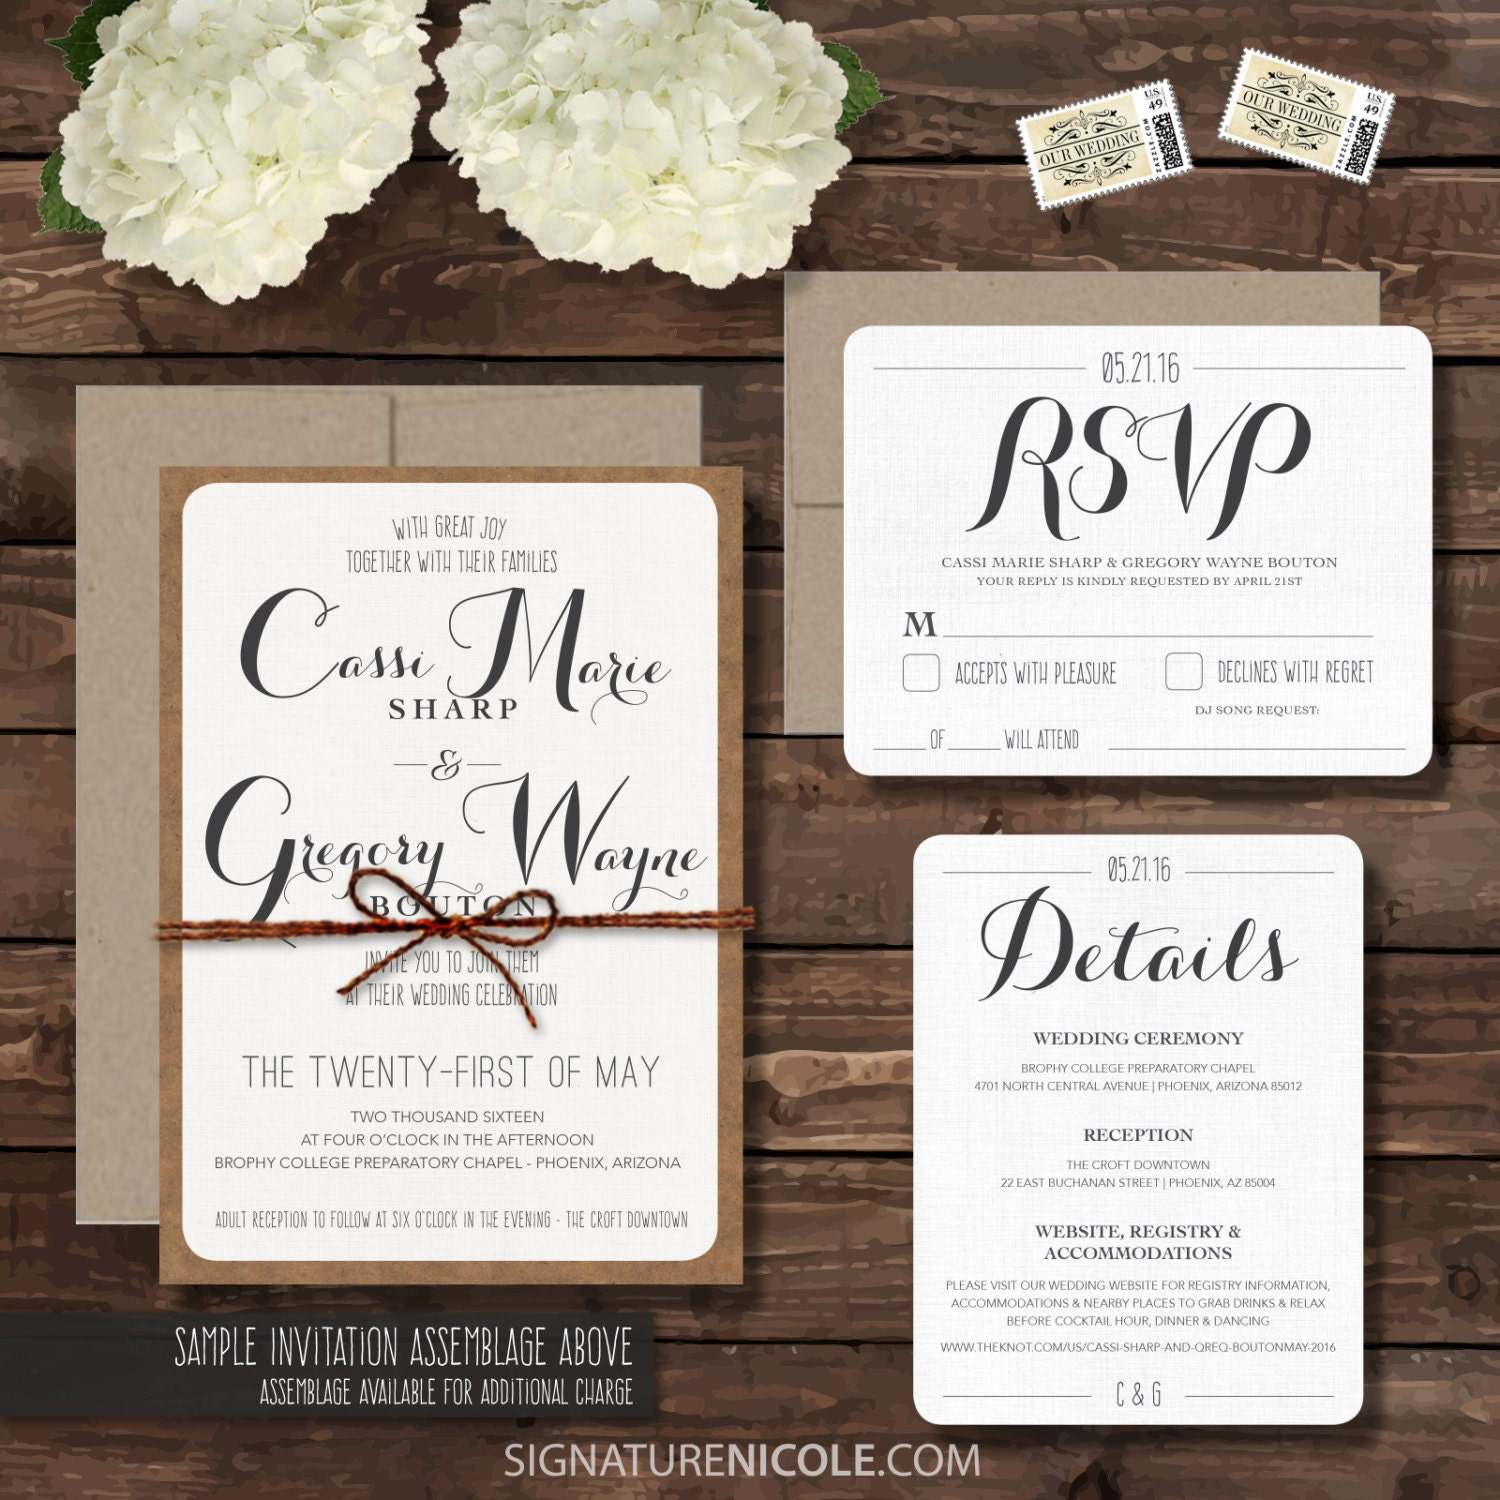 Rustic Wedding Invitations: SAMPLE Rustic Wedding Invitation With RSVP And By